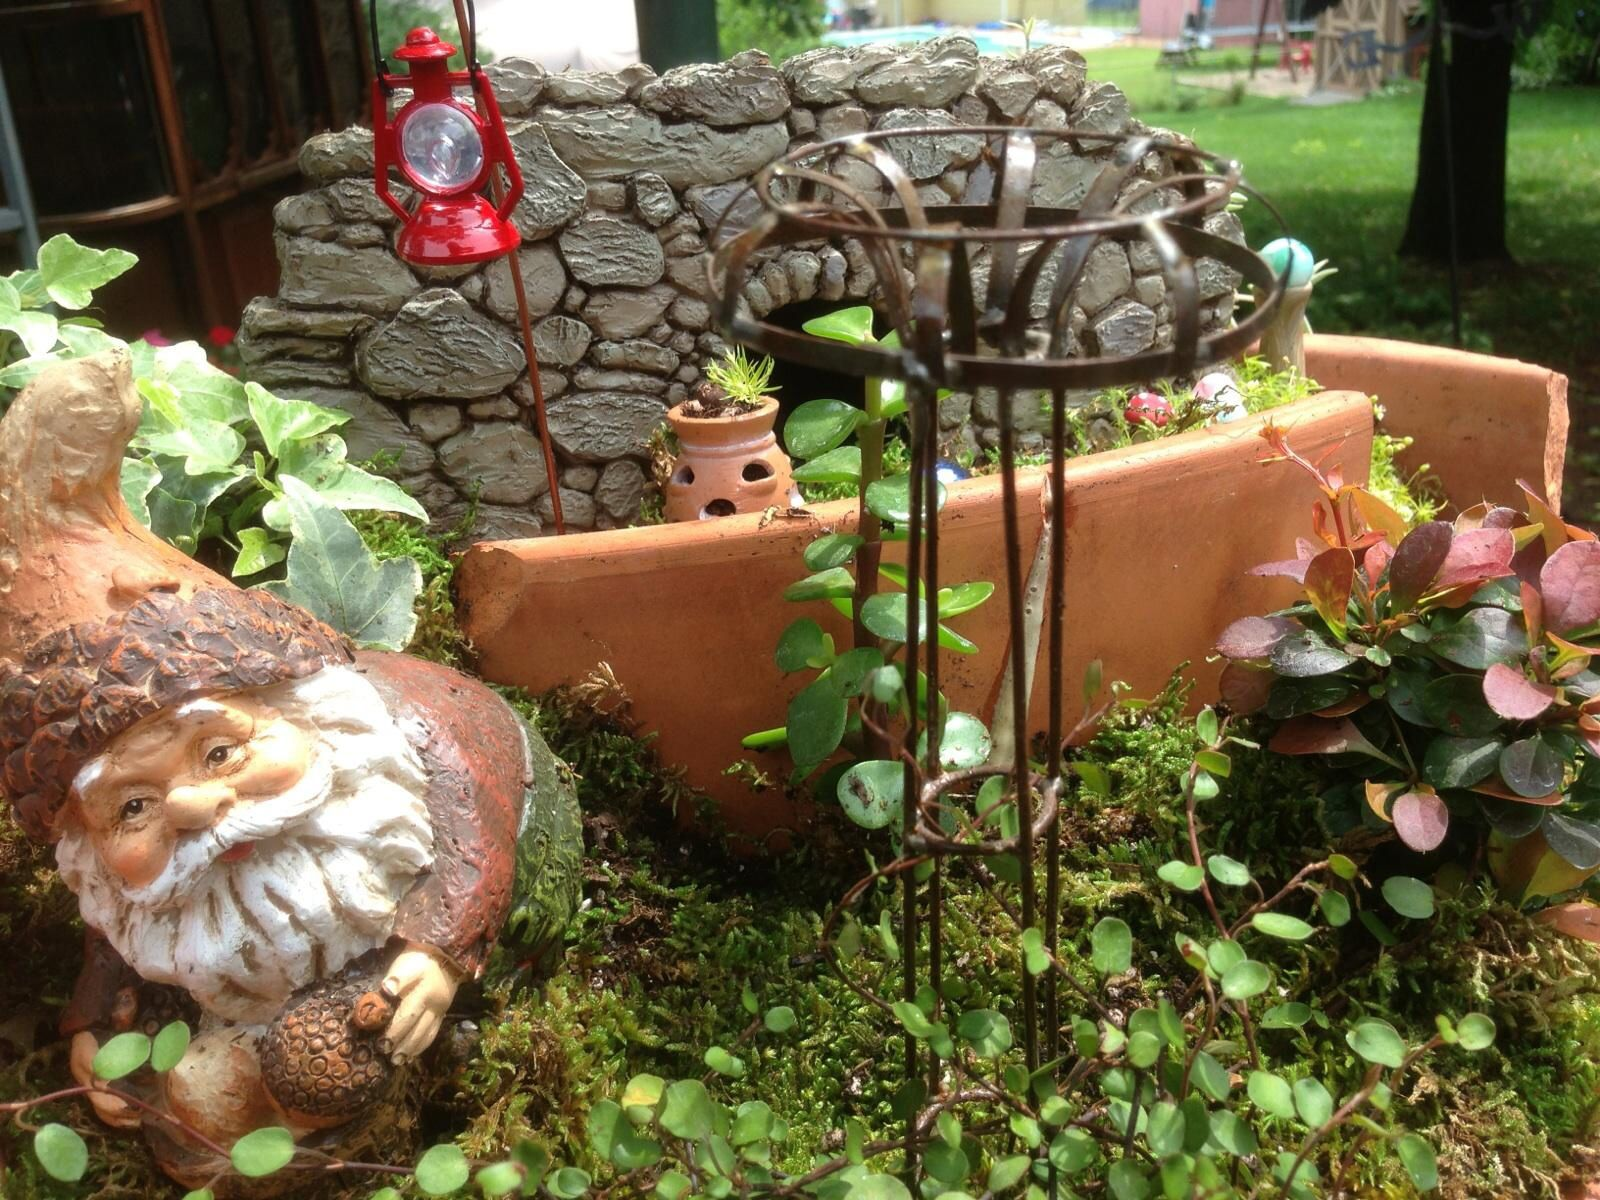 Gnome garden by Lindie | Gnome garden | Pinterest | Gnome garden and ...